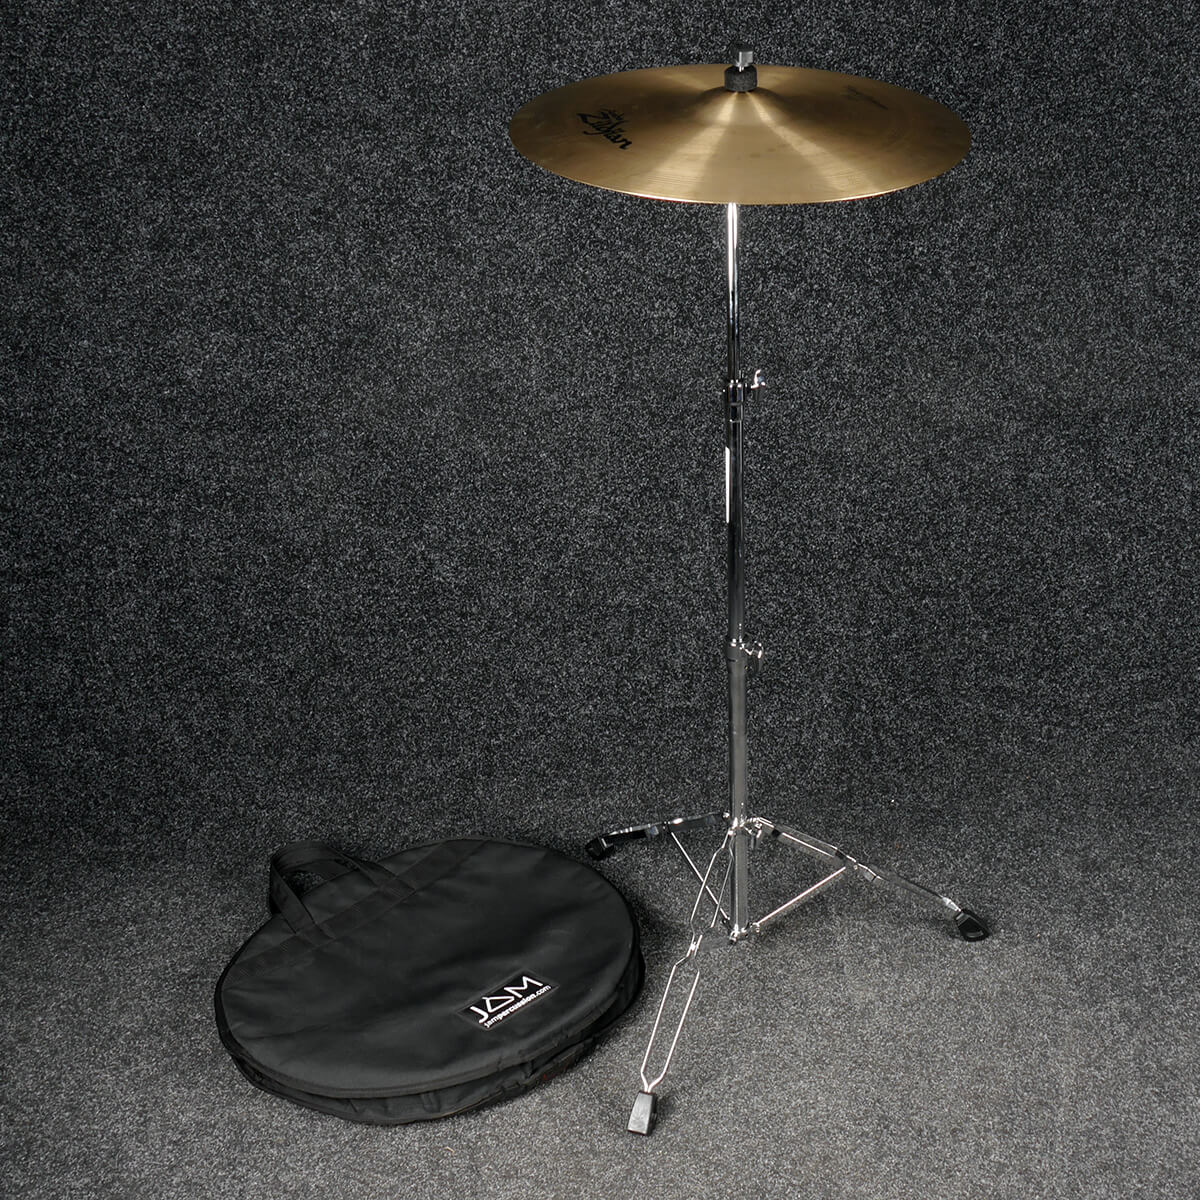 Zildjian Classic Selection Suspended 20in Crash Ride & Stand w/Bag - 2nd Hand